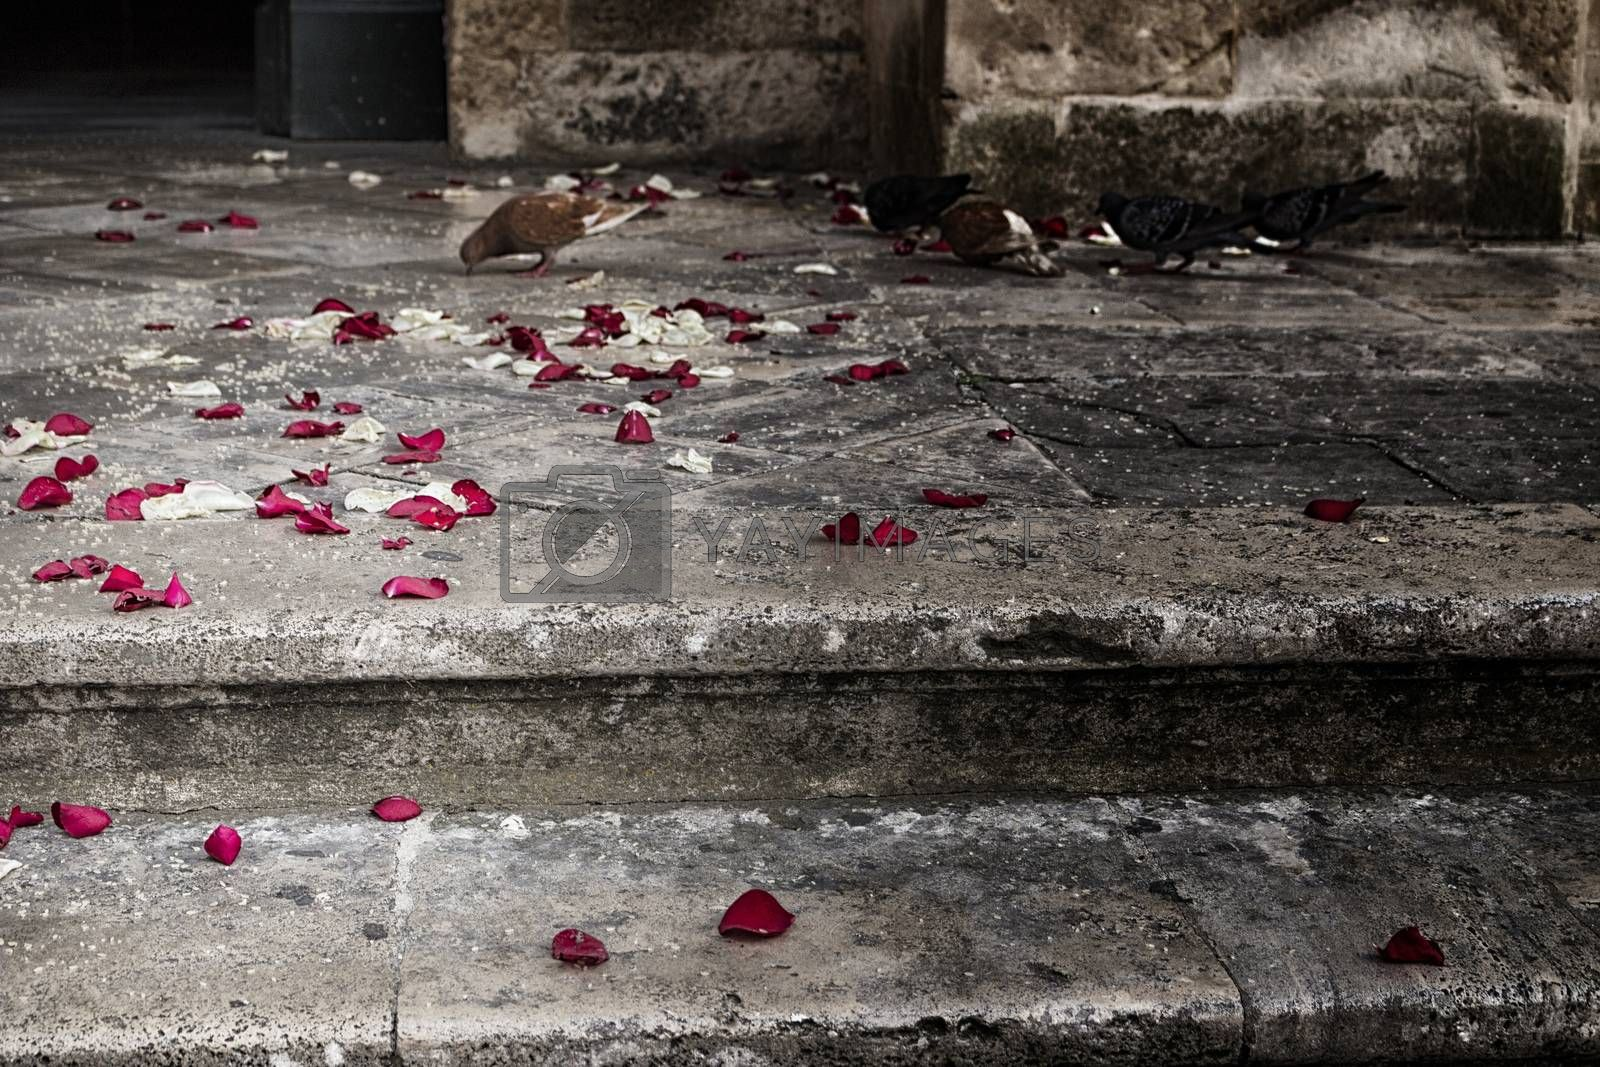 Just married: rose petals and rice grains on the steps of a staircase